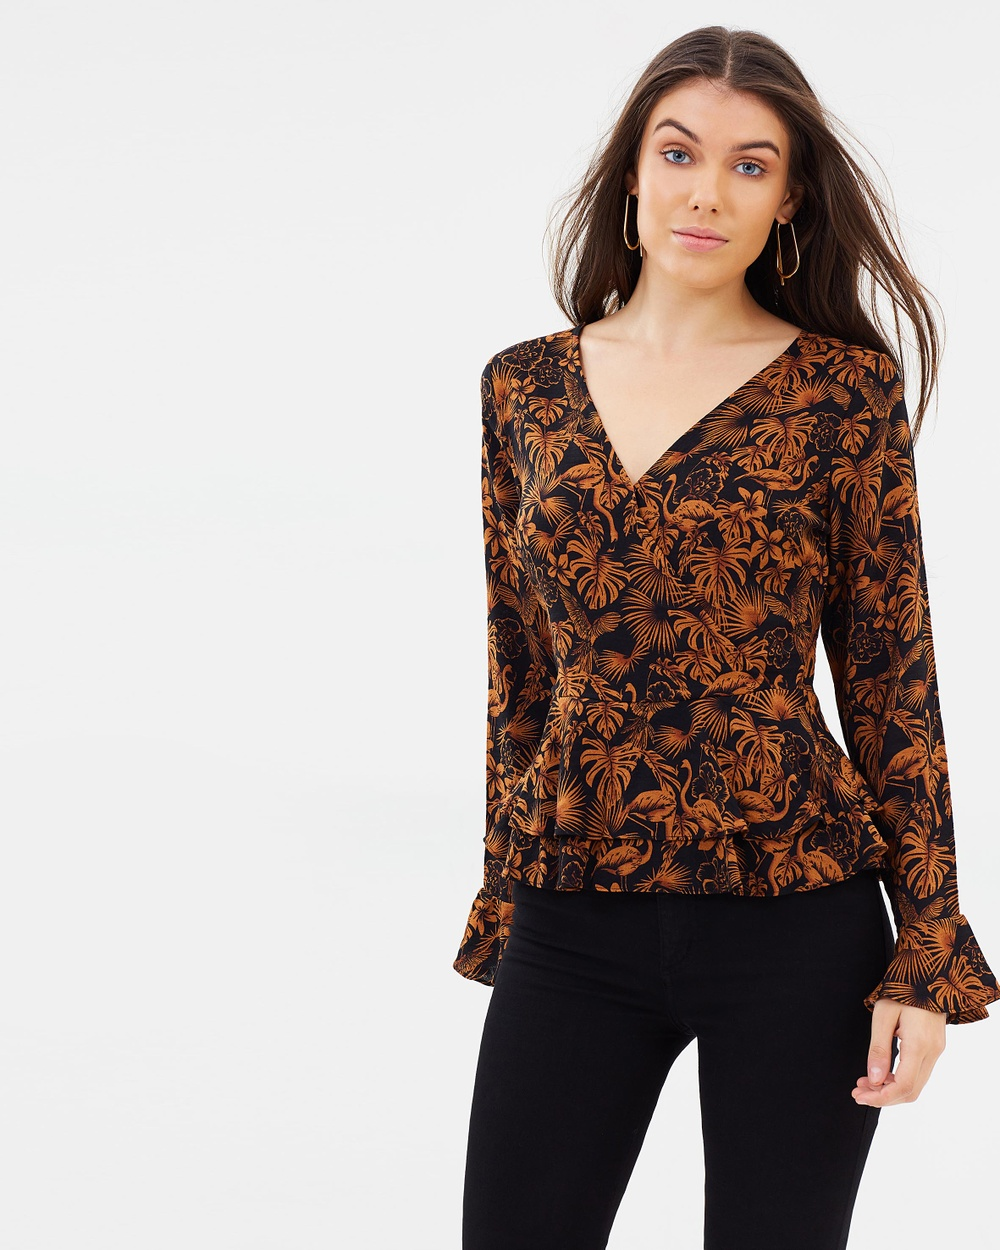 Atmos & Here ICONIC EXCLUSIVE Margo Ruffle Top Tops Retro Palm ICONIC EXCLUSIVE Margo Ruffle Top